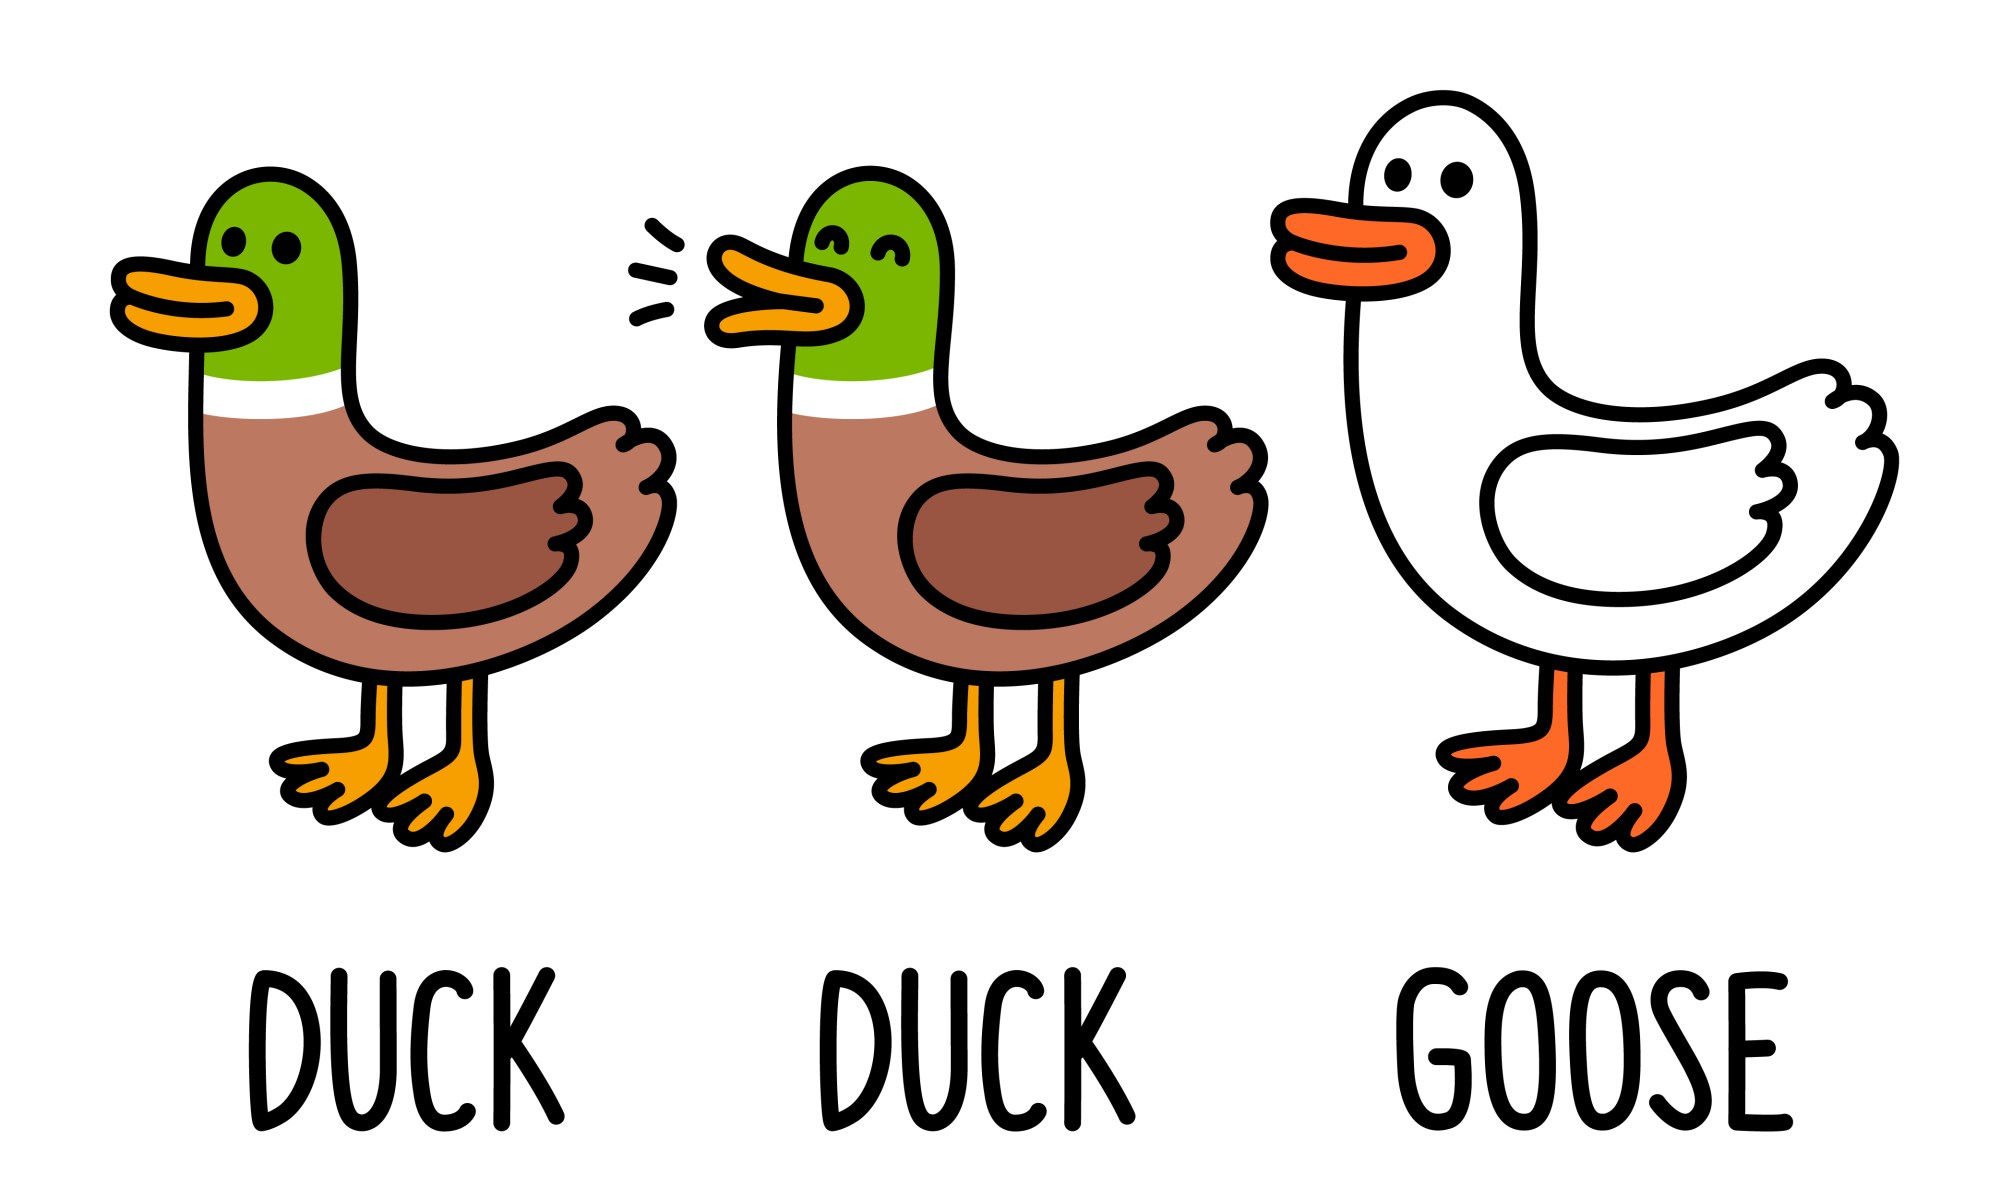 Duck, duck, goose: be careful with selection